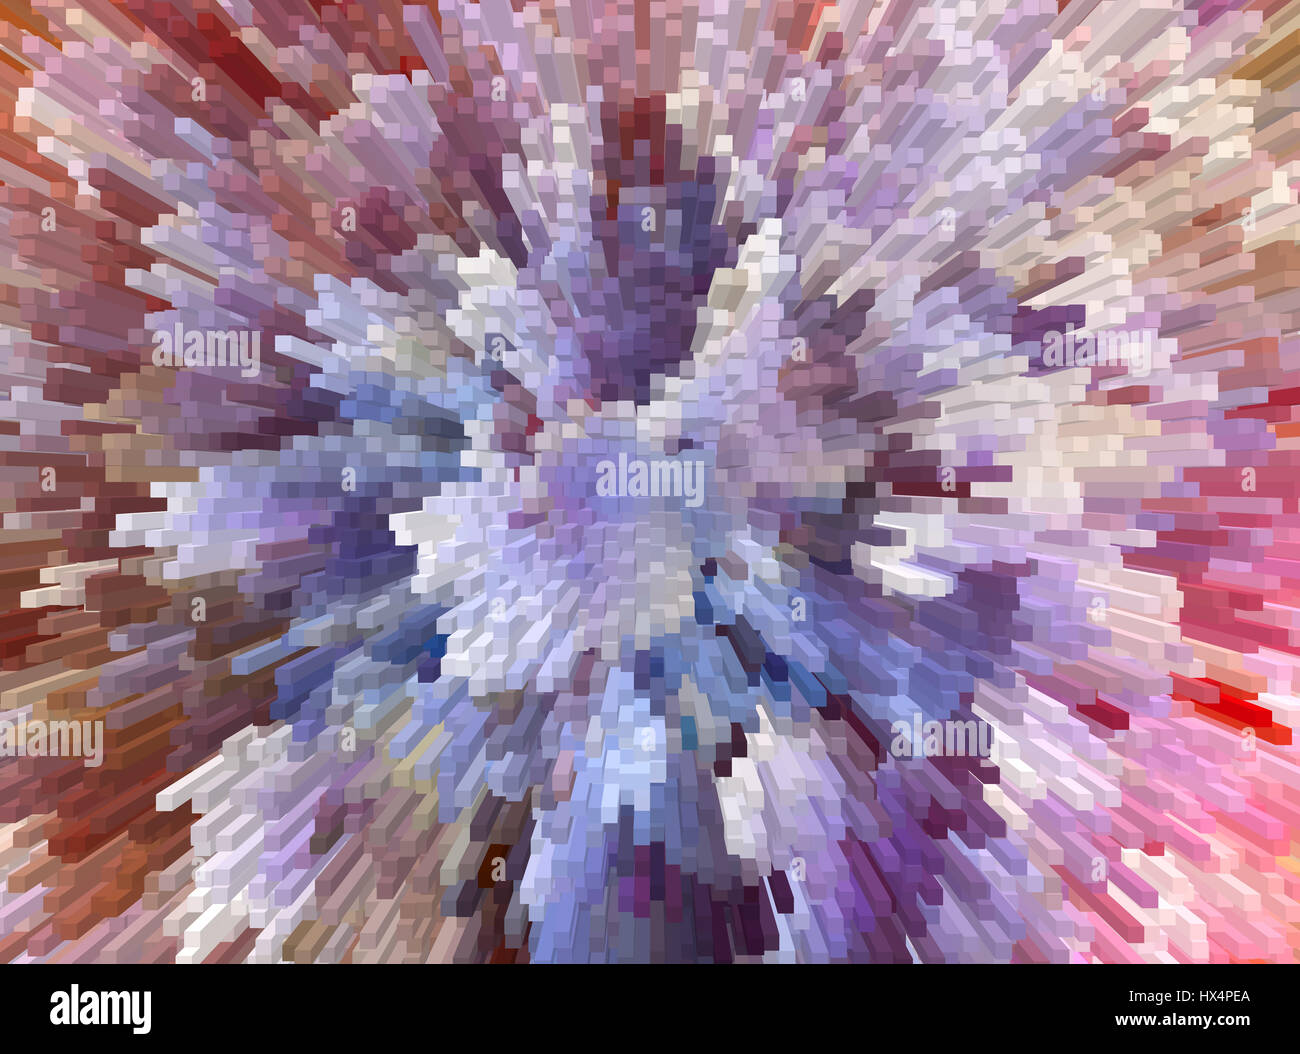 Pics photos 3d colorful abstract background design - Modern Abstract Background Design 3d Colorful Blocks And Light Flare Bang